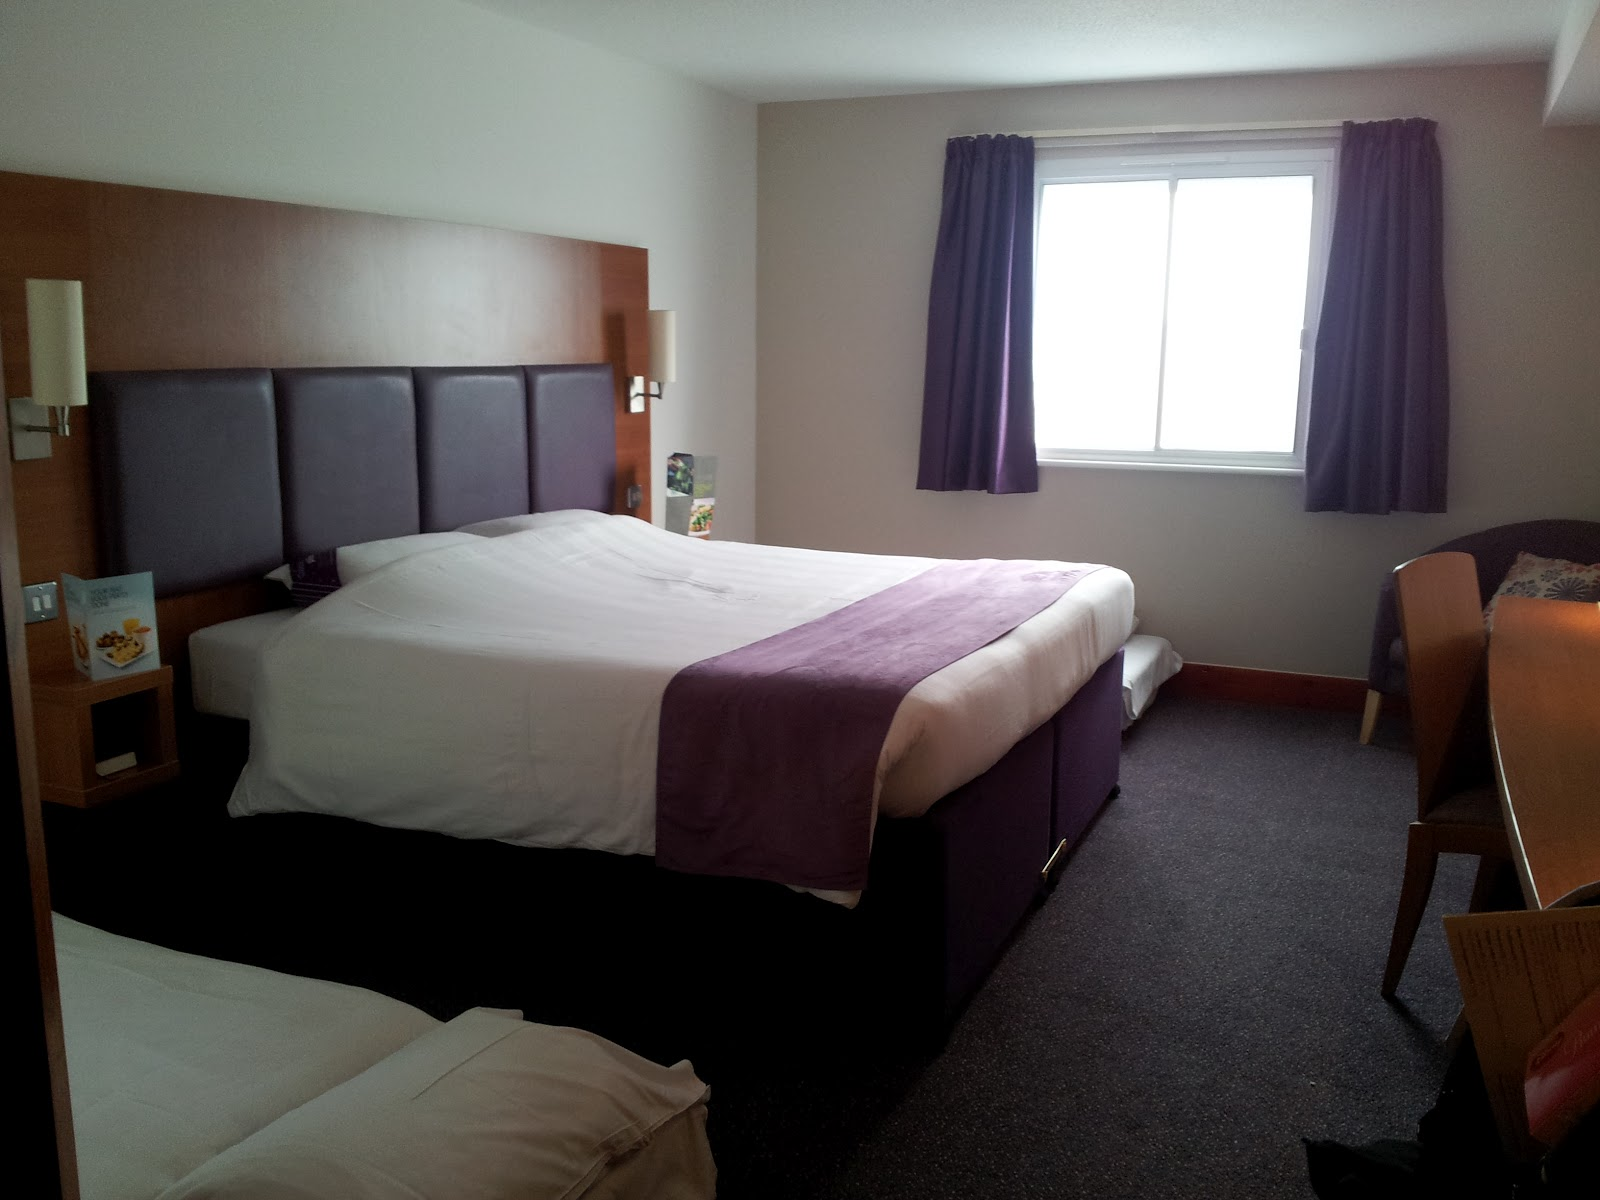 Premier Inn Twin Room Sofa Bed